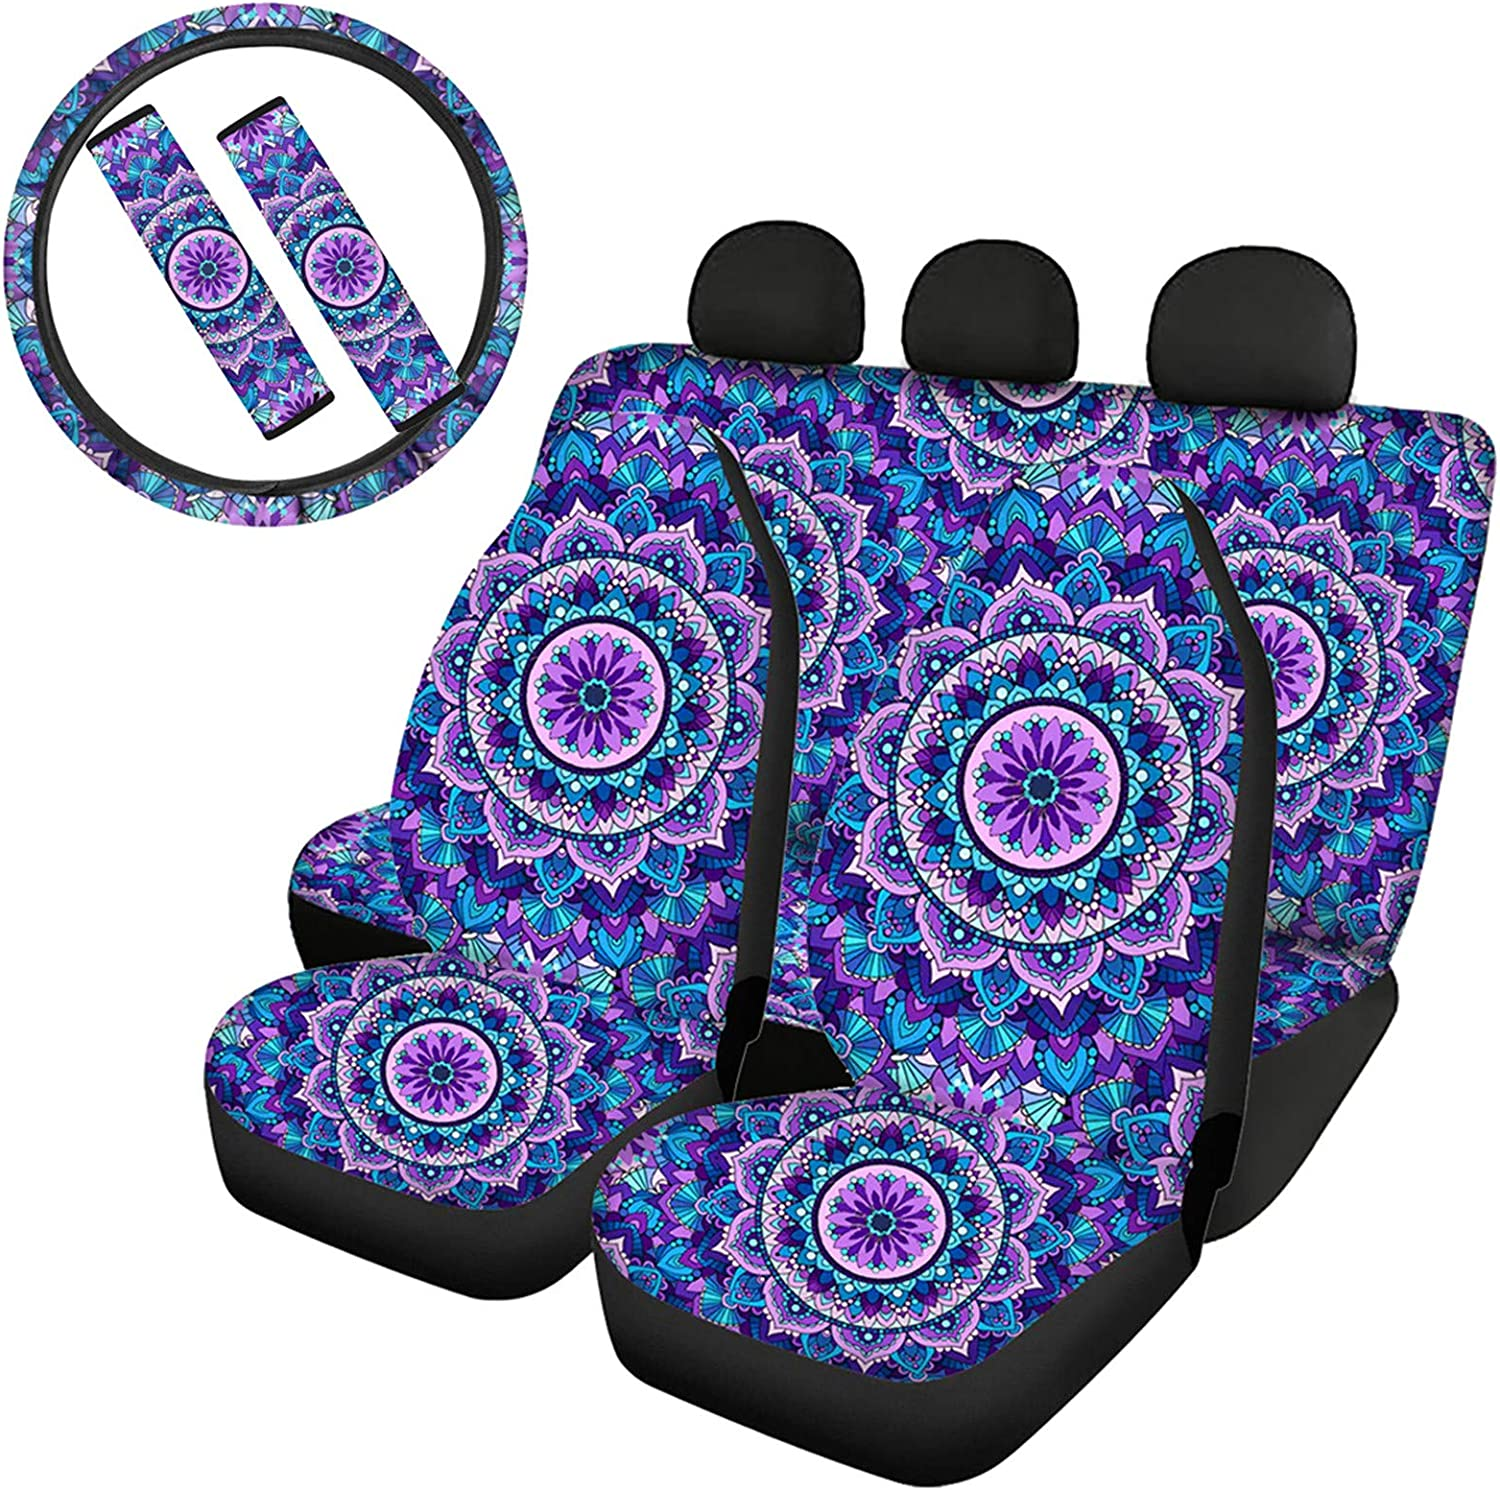 UZZUHI Car Front Rear Japan Maker New Seat Steering Covers+ S Wheel Cover+ Max 73% OFF